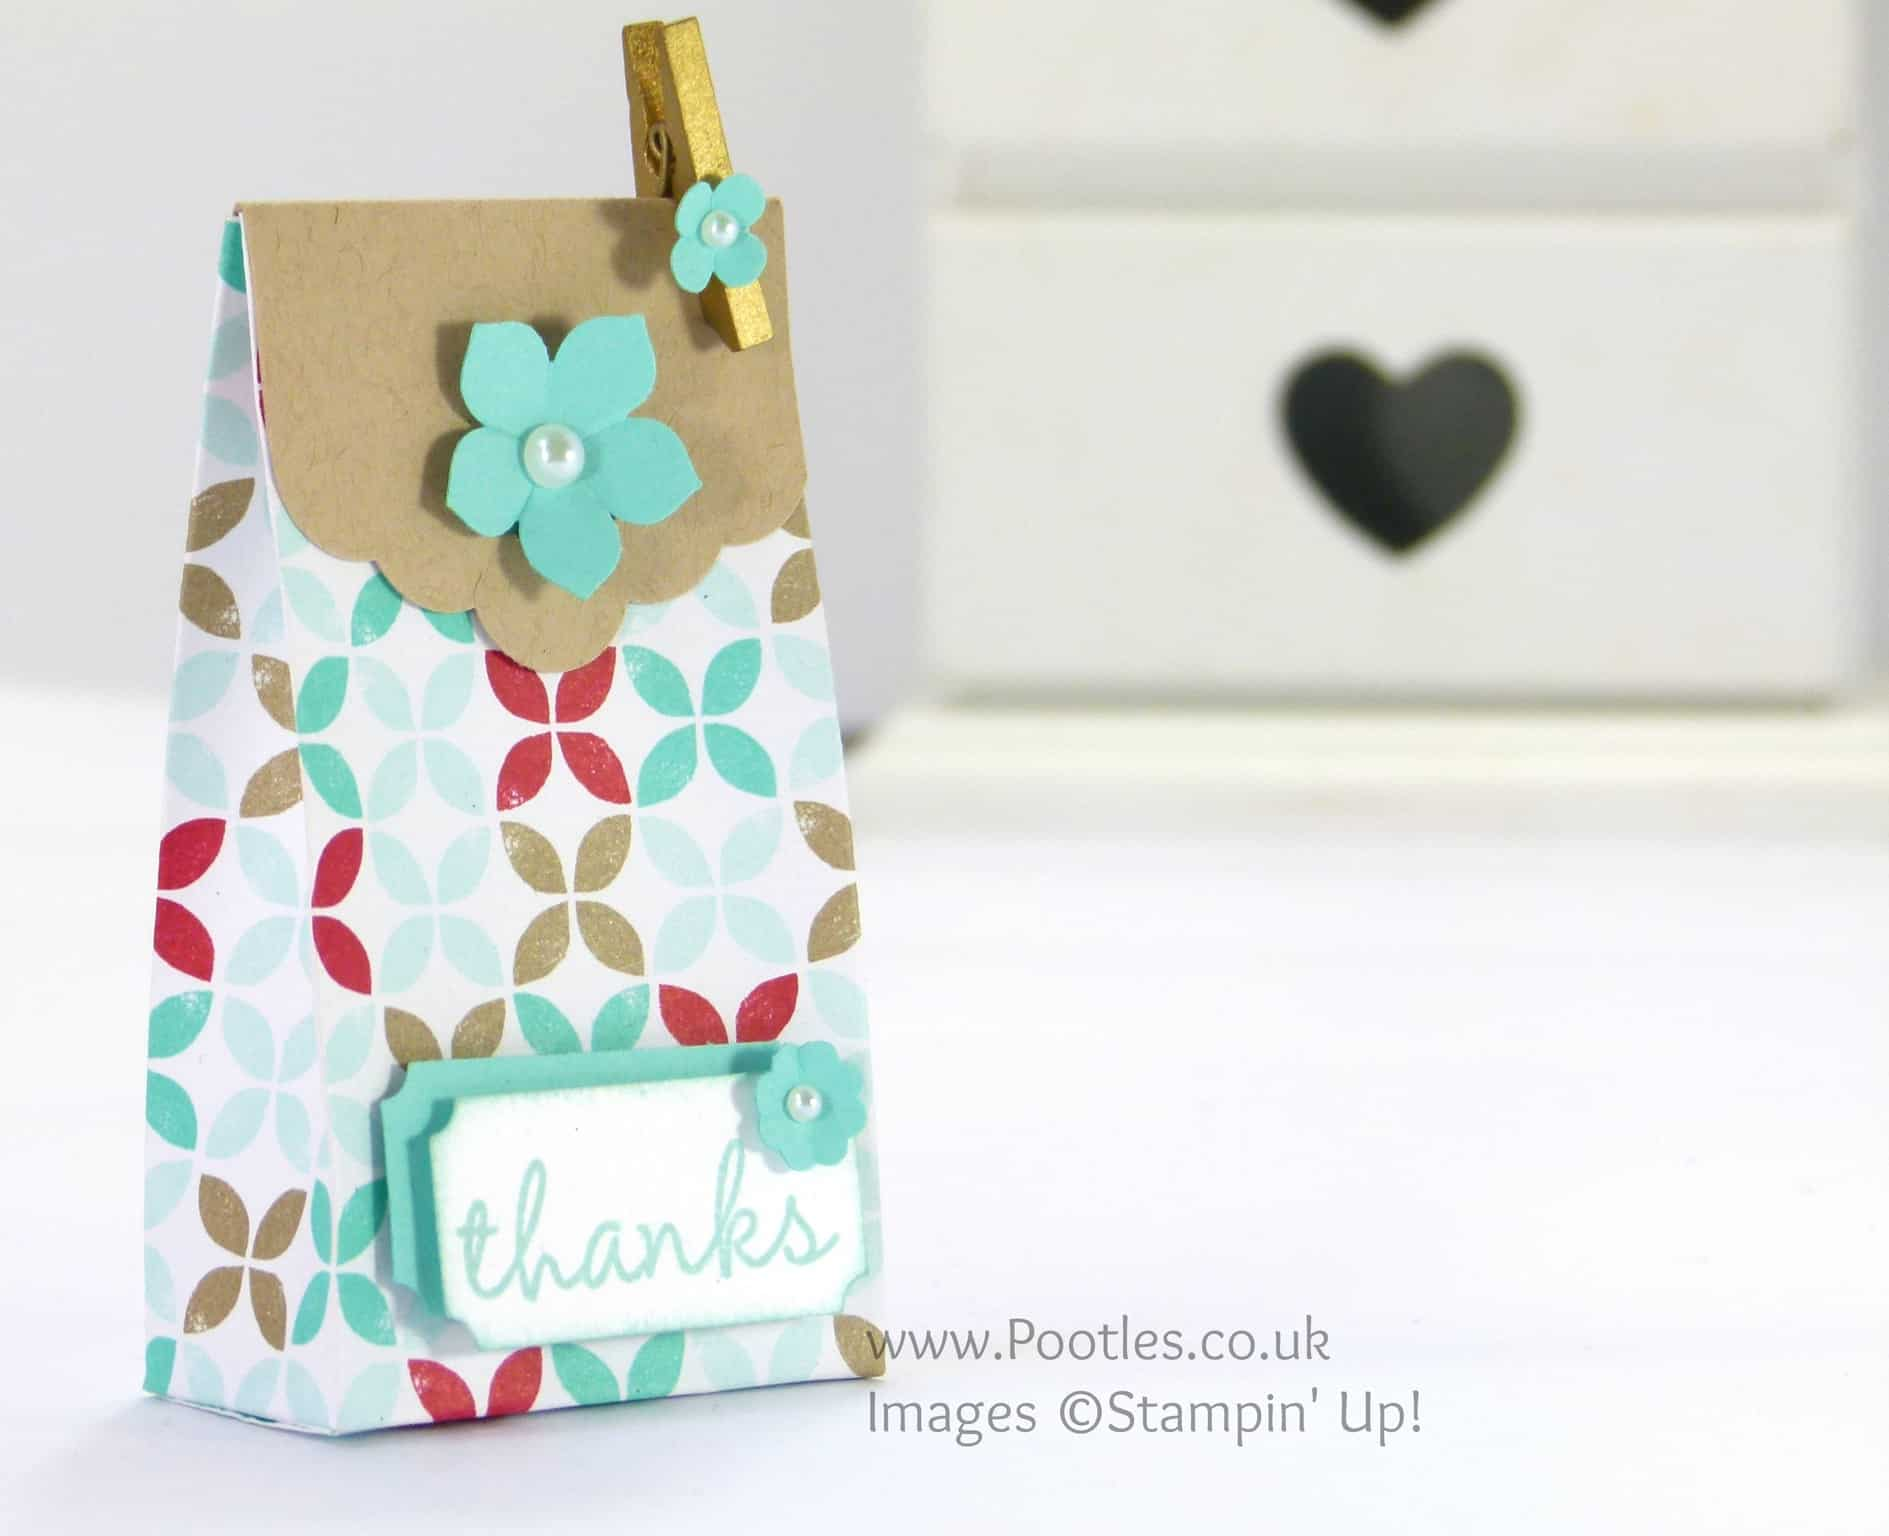 Fresh Prints DSP Bag Swaps for Stampin' Up! UK Regional